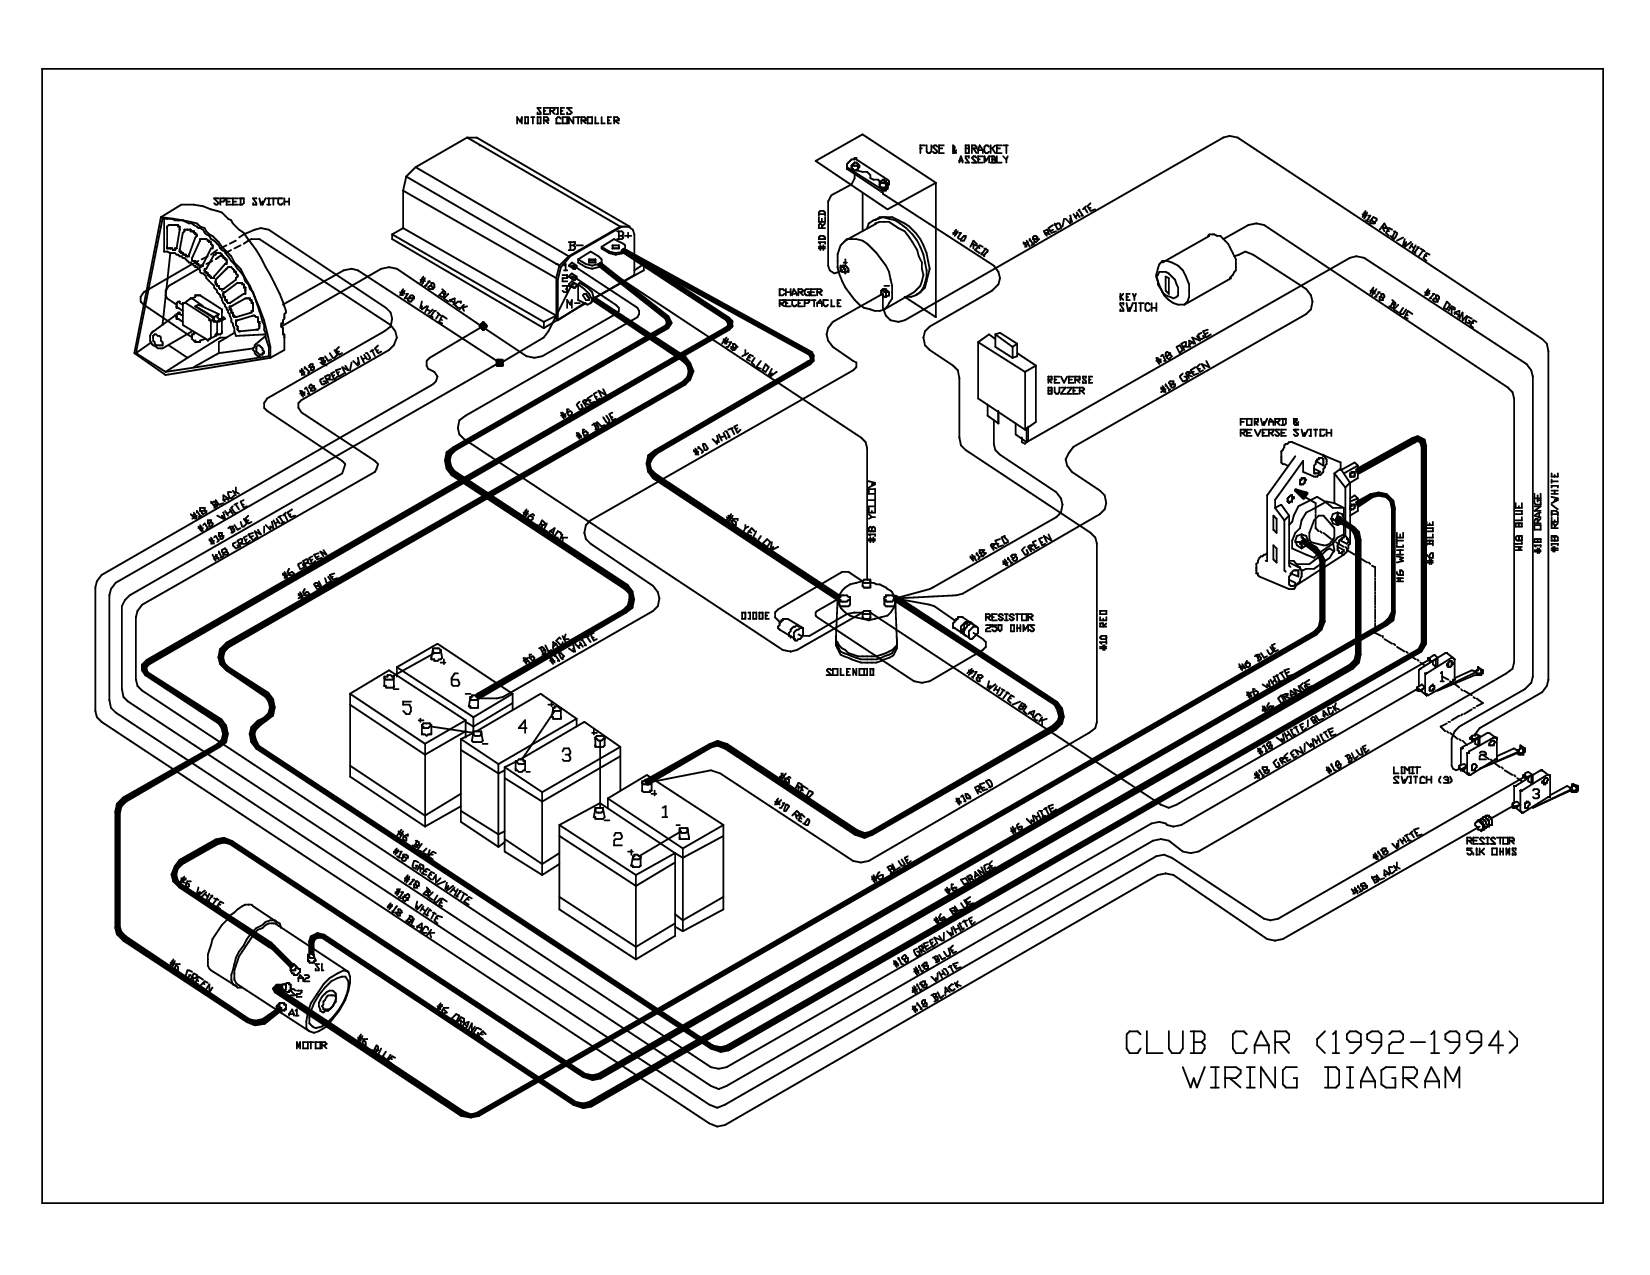 f6c561ac444229e87339c7e65e18cc68 1994 club car wiring diagram club car rev limiter diagram \u2022 wiring 1993 electric club car wiring diagram at alyssarenee.co